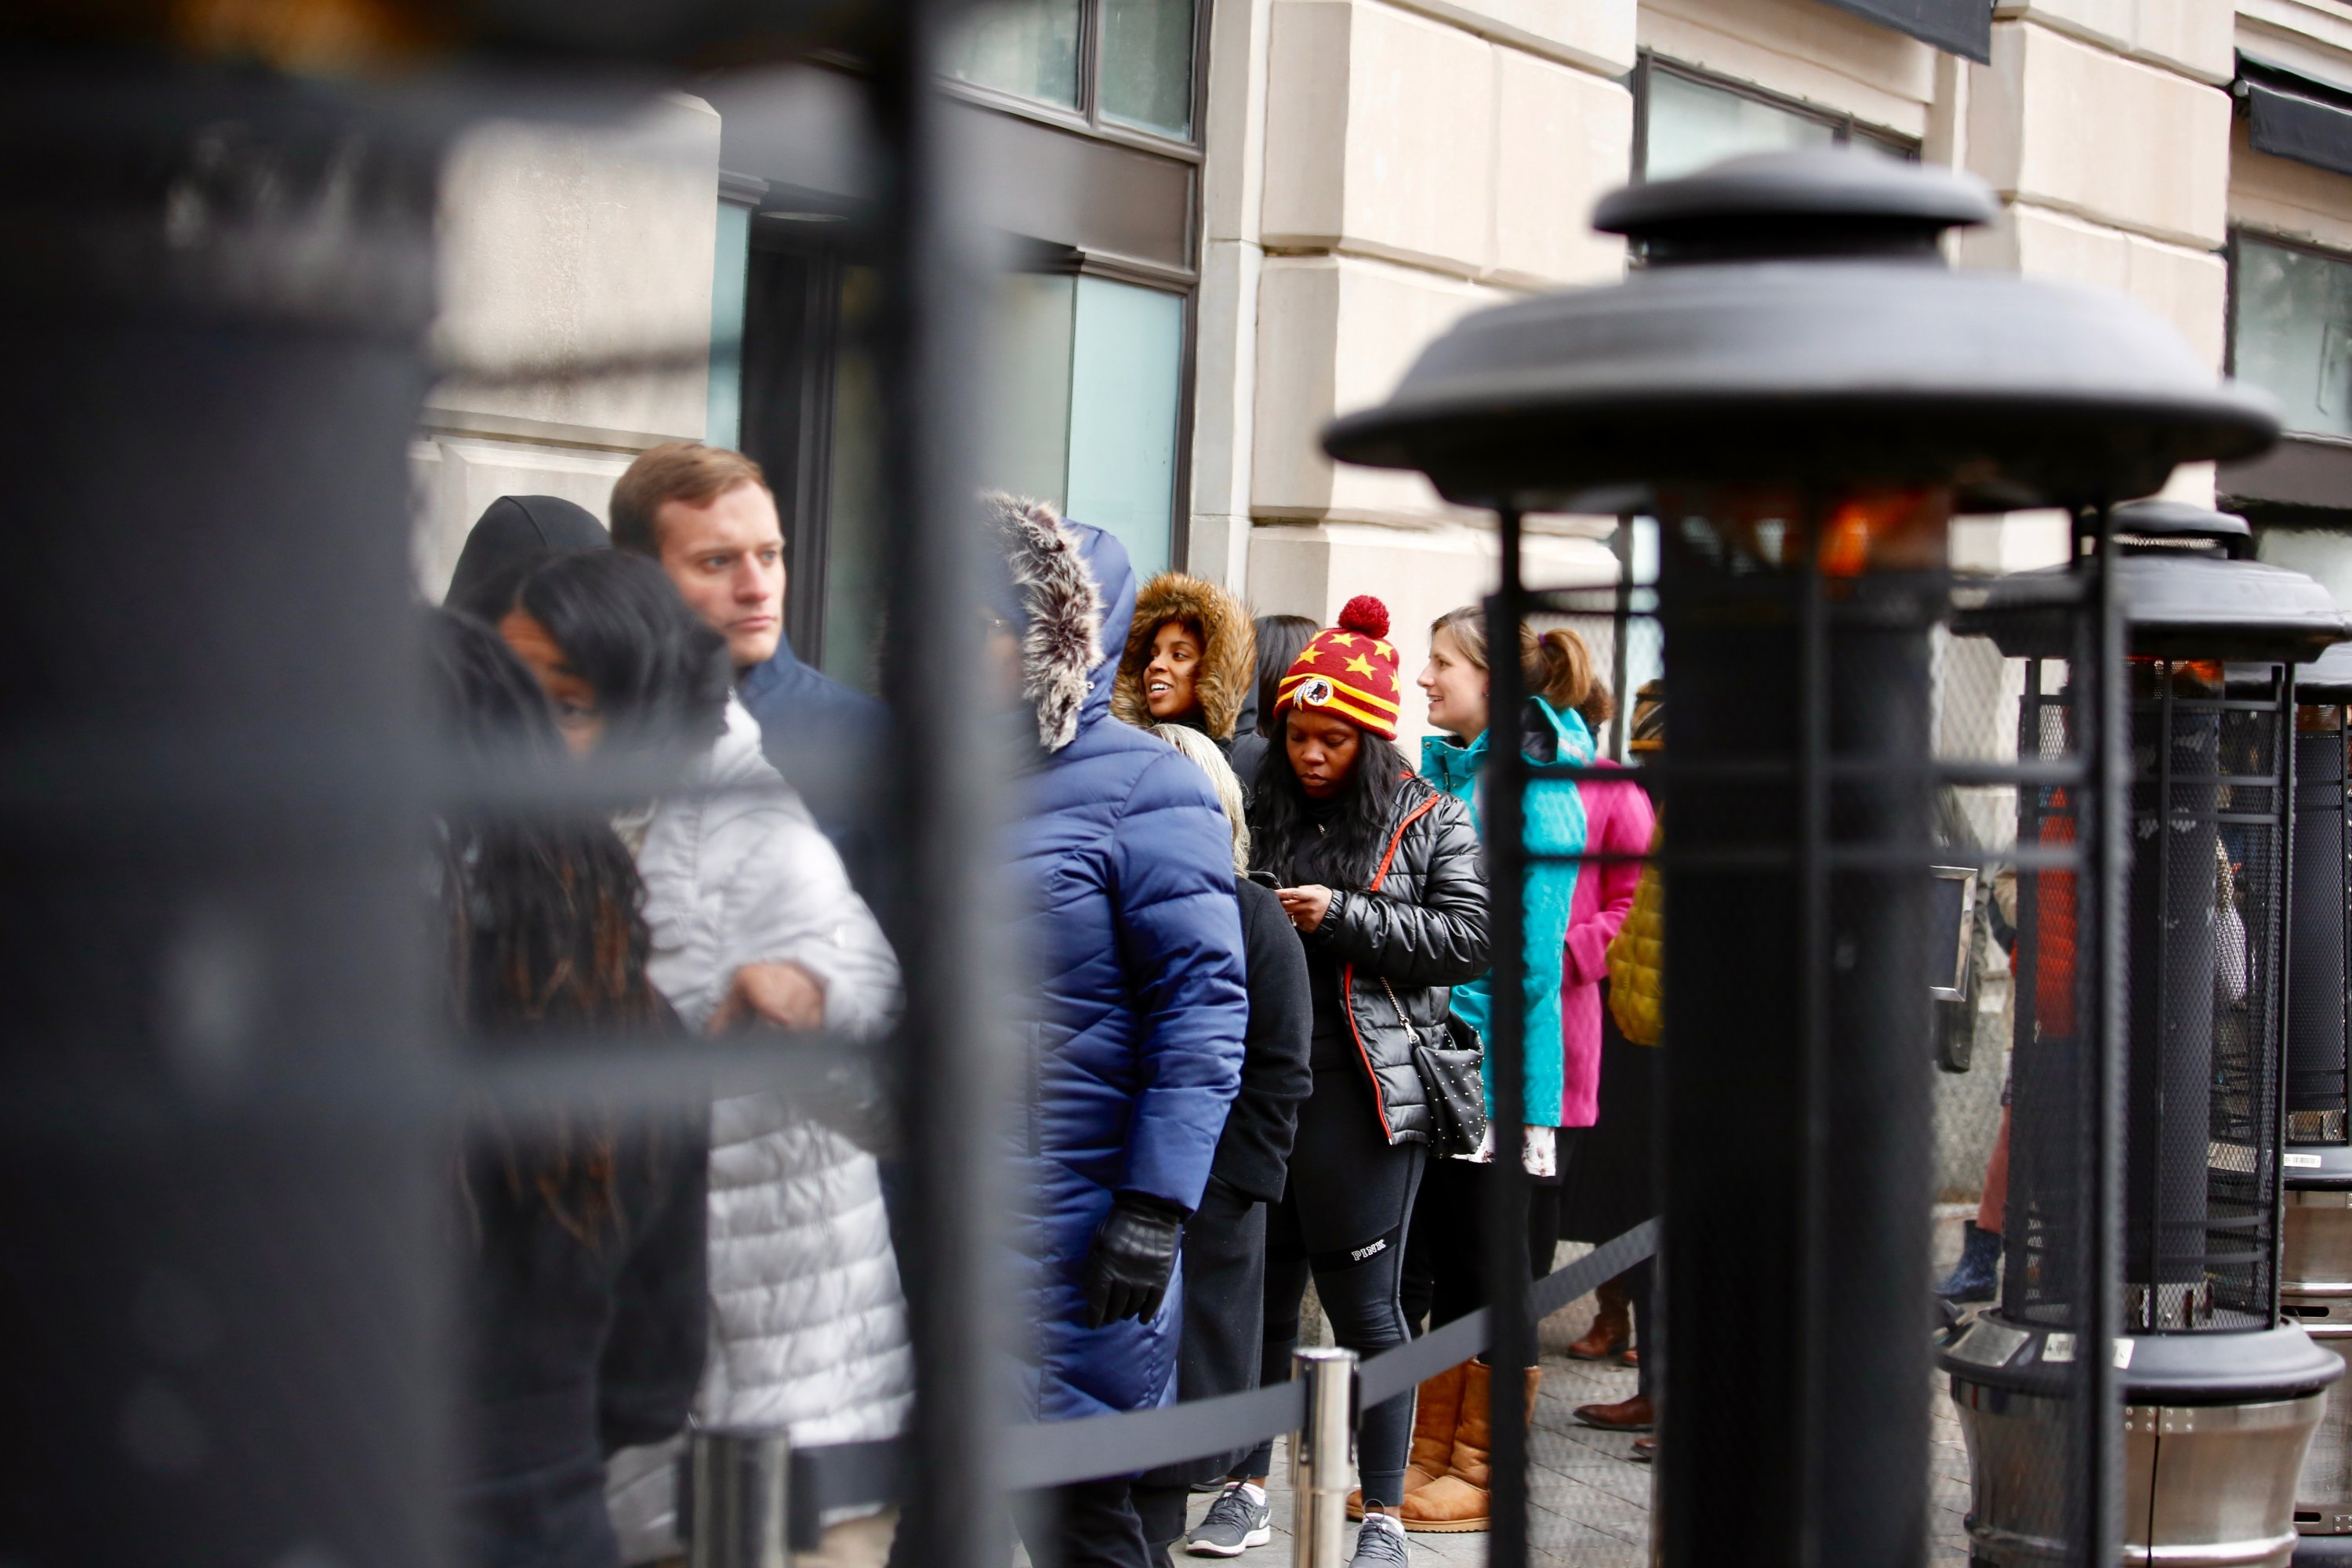 A DC Woman Gave $640 to Federal Employees Waiting in Line at José Andrés' Relief Kitchen